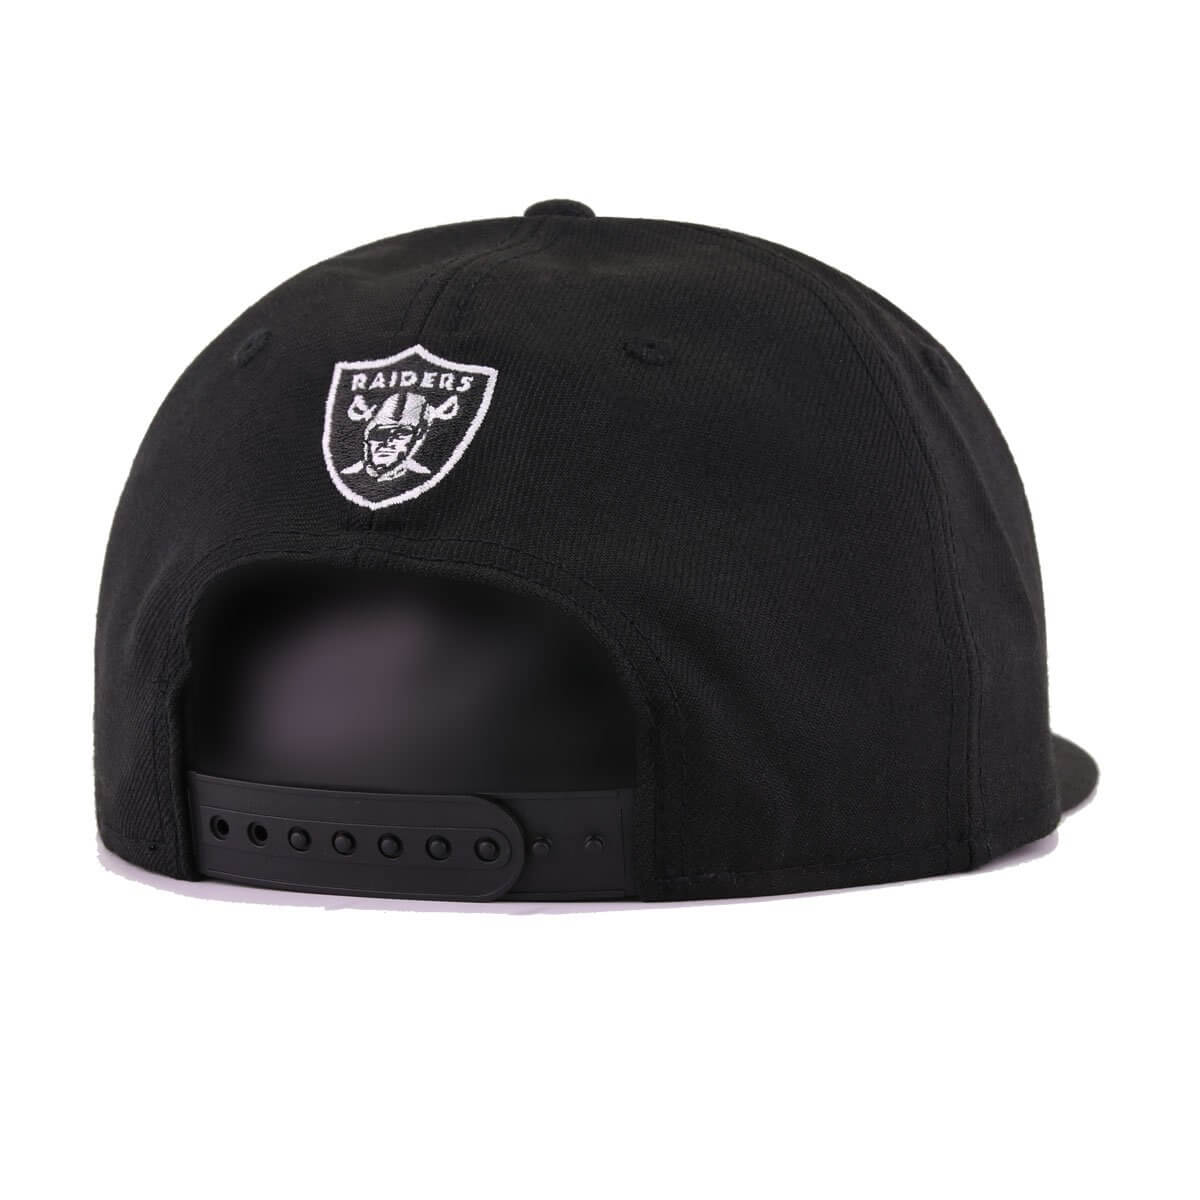 Oakland Raiders Black White Classic Wordmark New Era 9Fifty Snapback